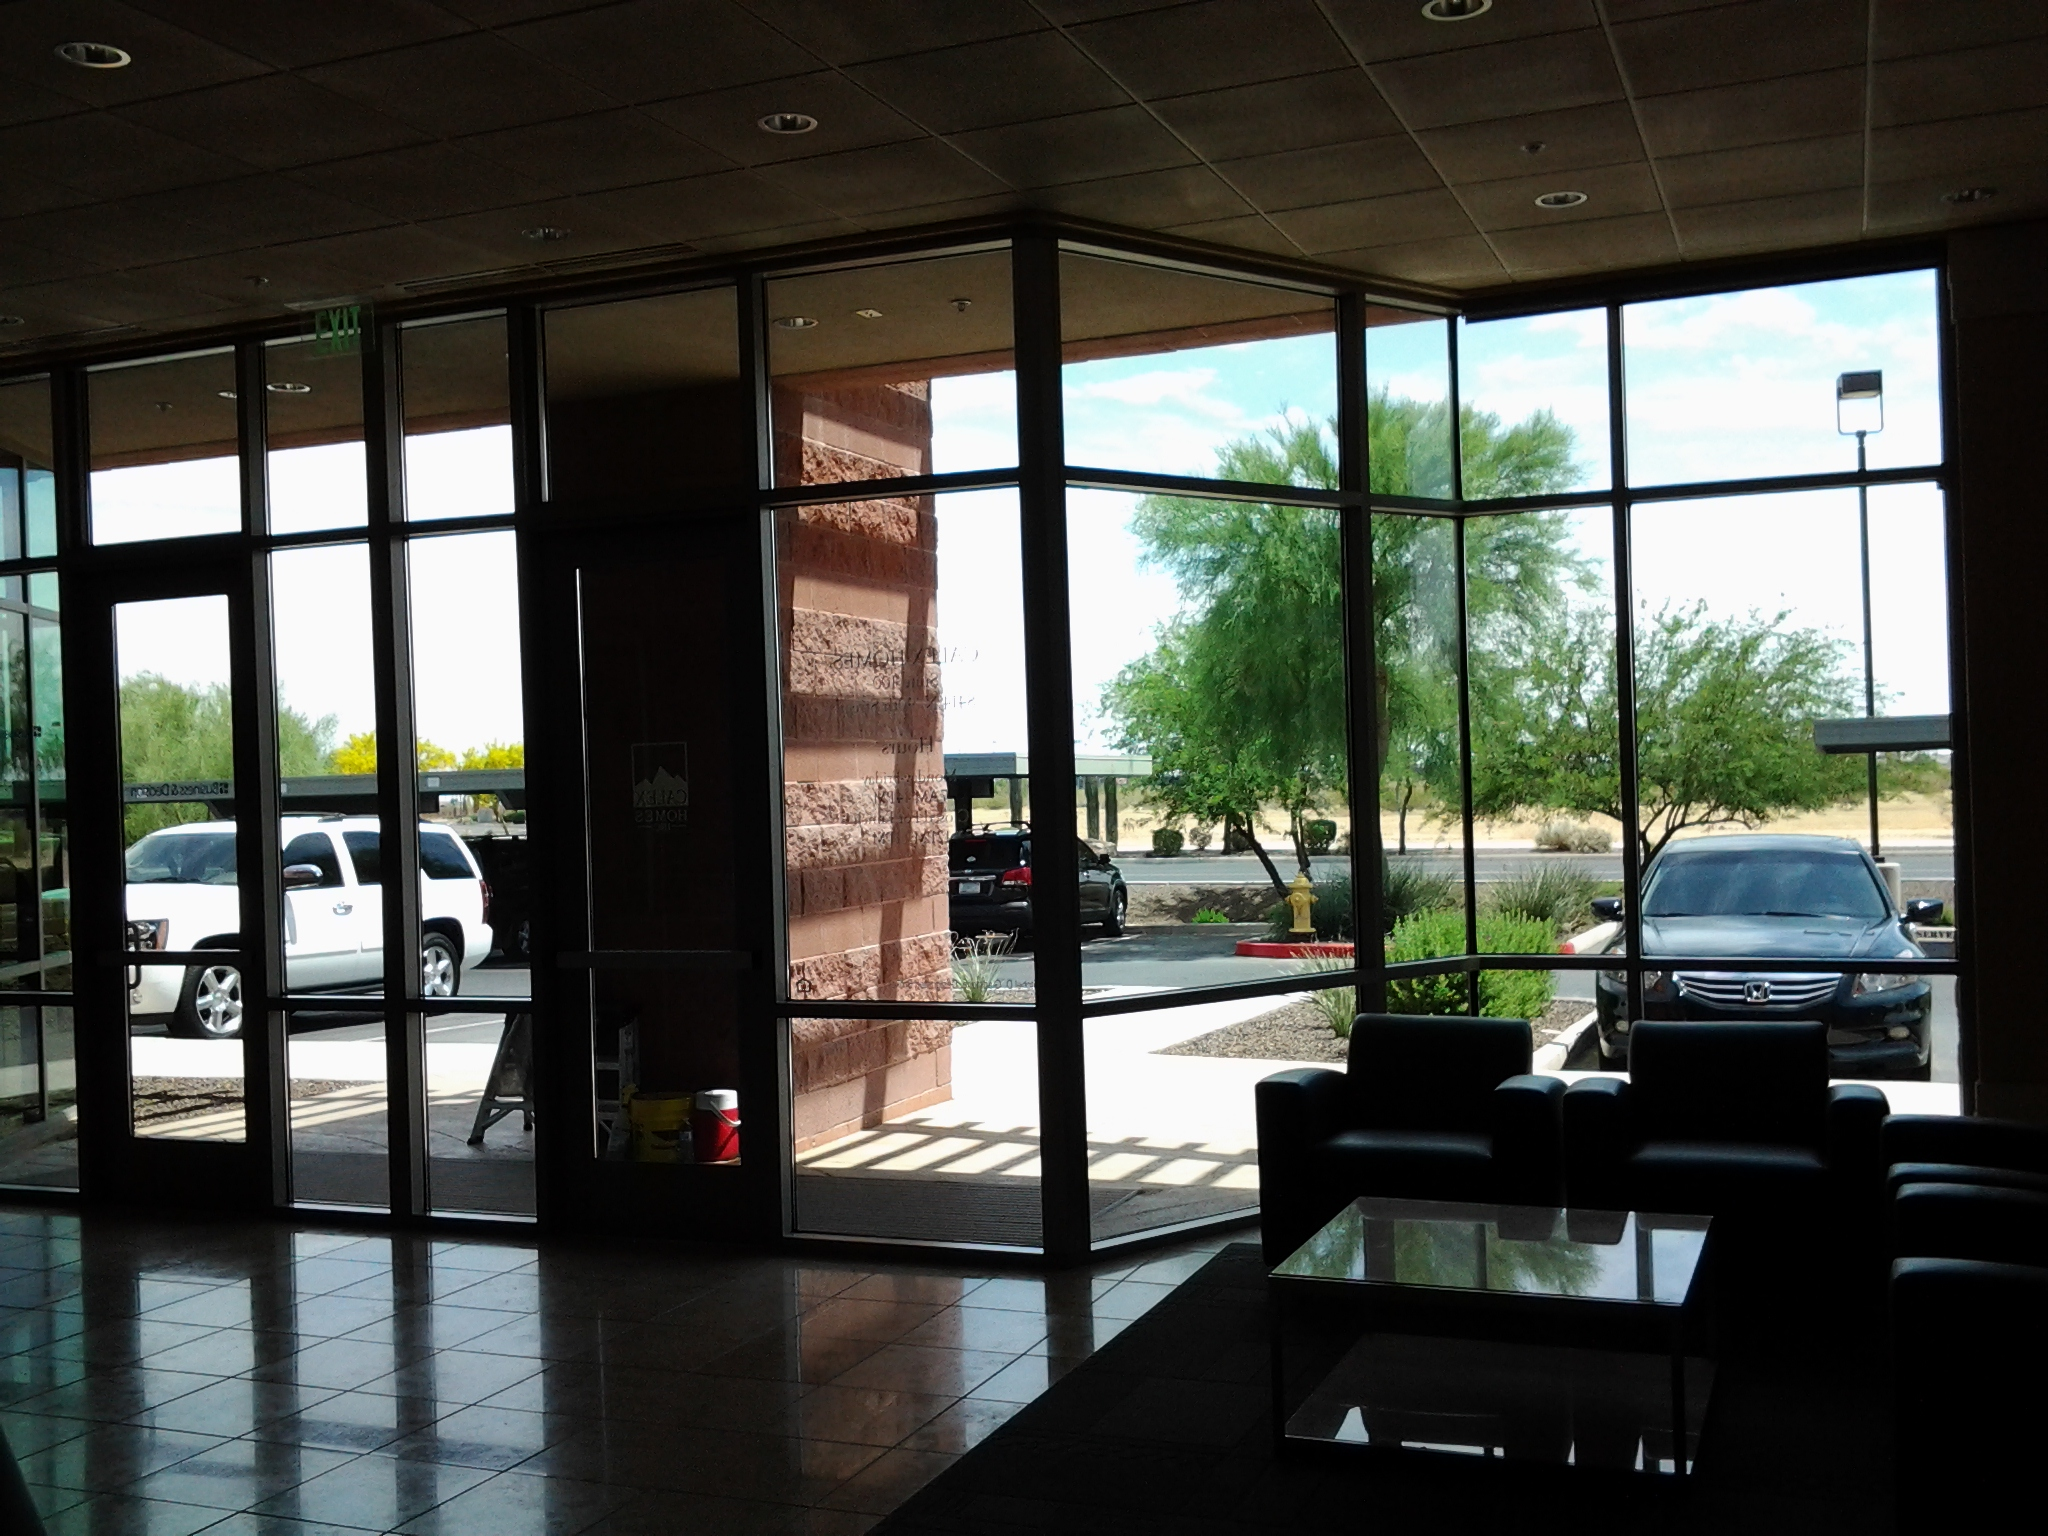 window cleaning scottsdale interior lobby windows scottsdale airpark window cleaning clearly professional